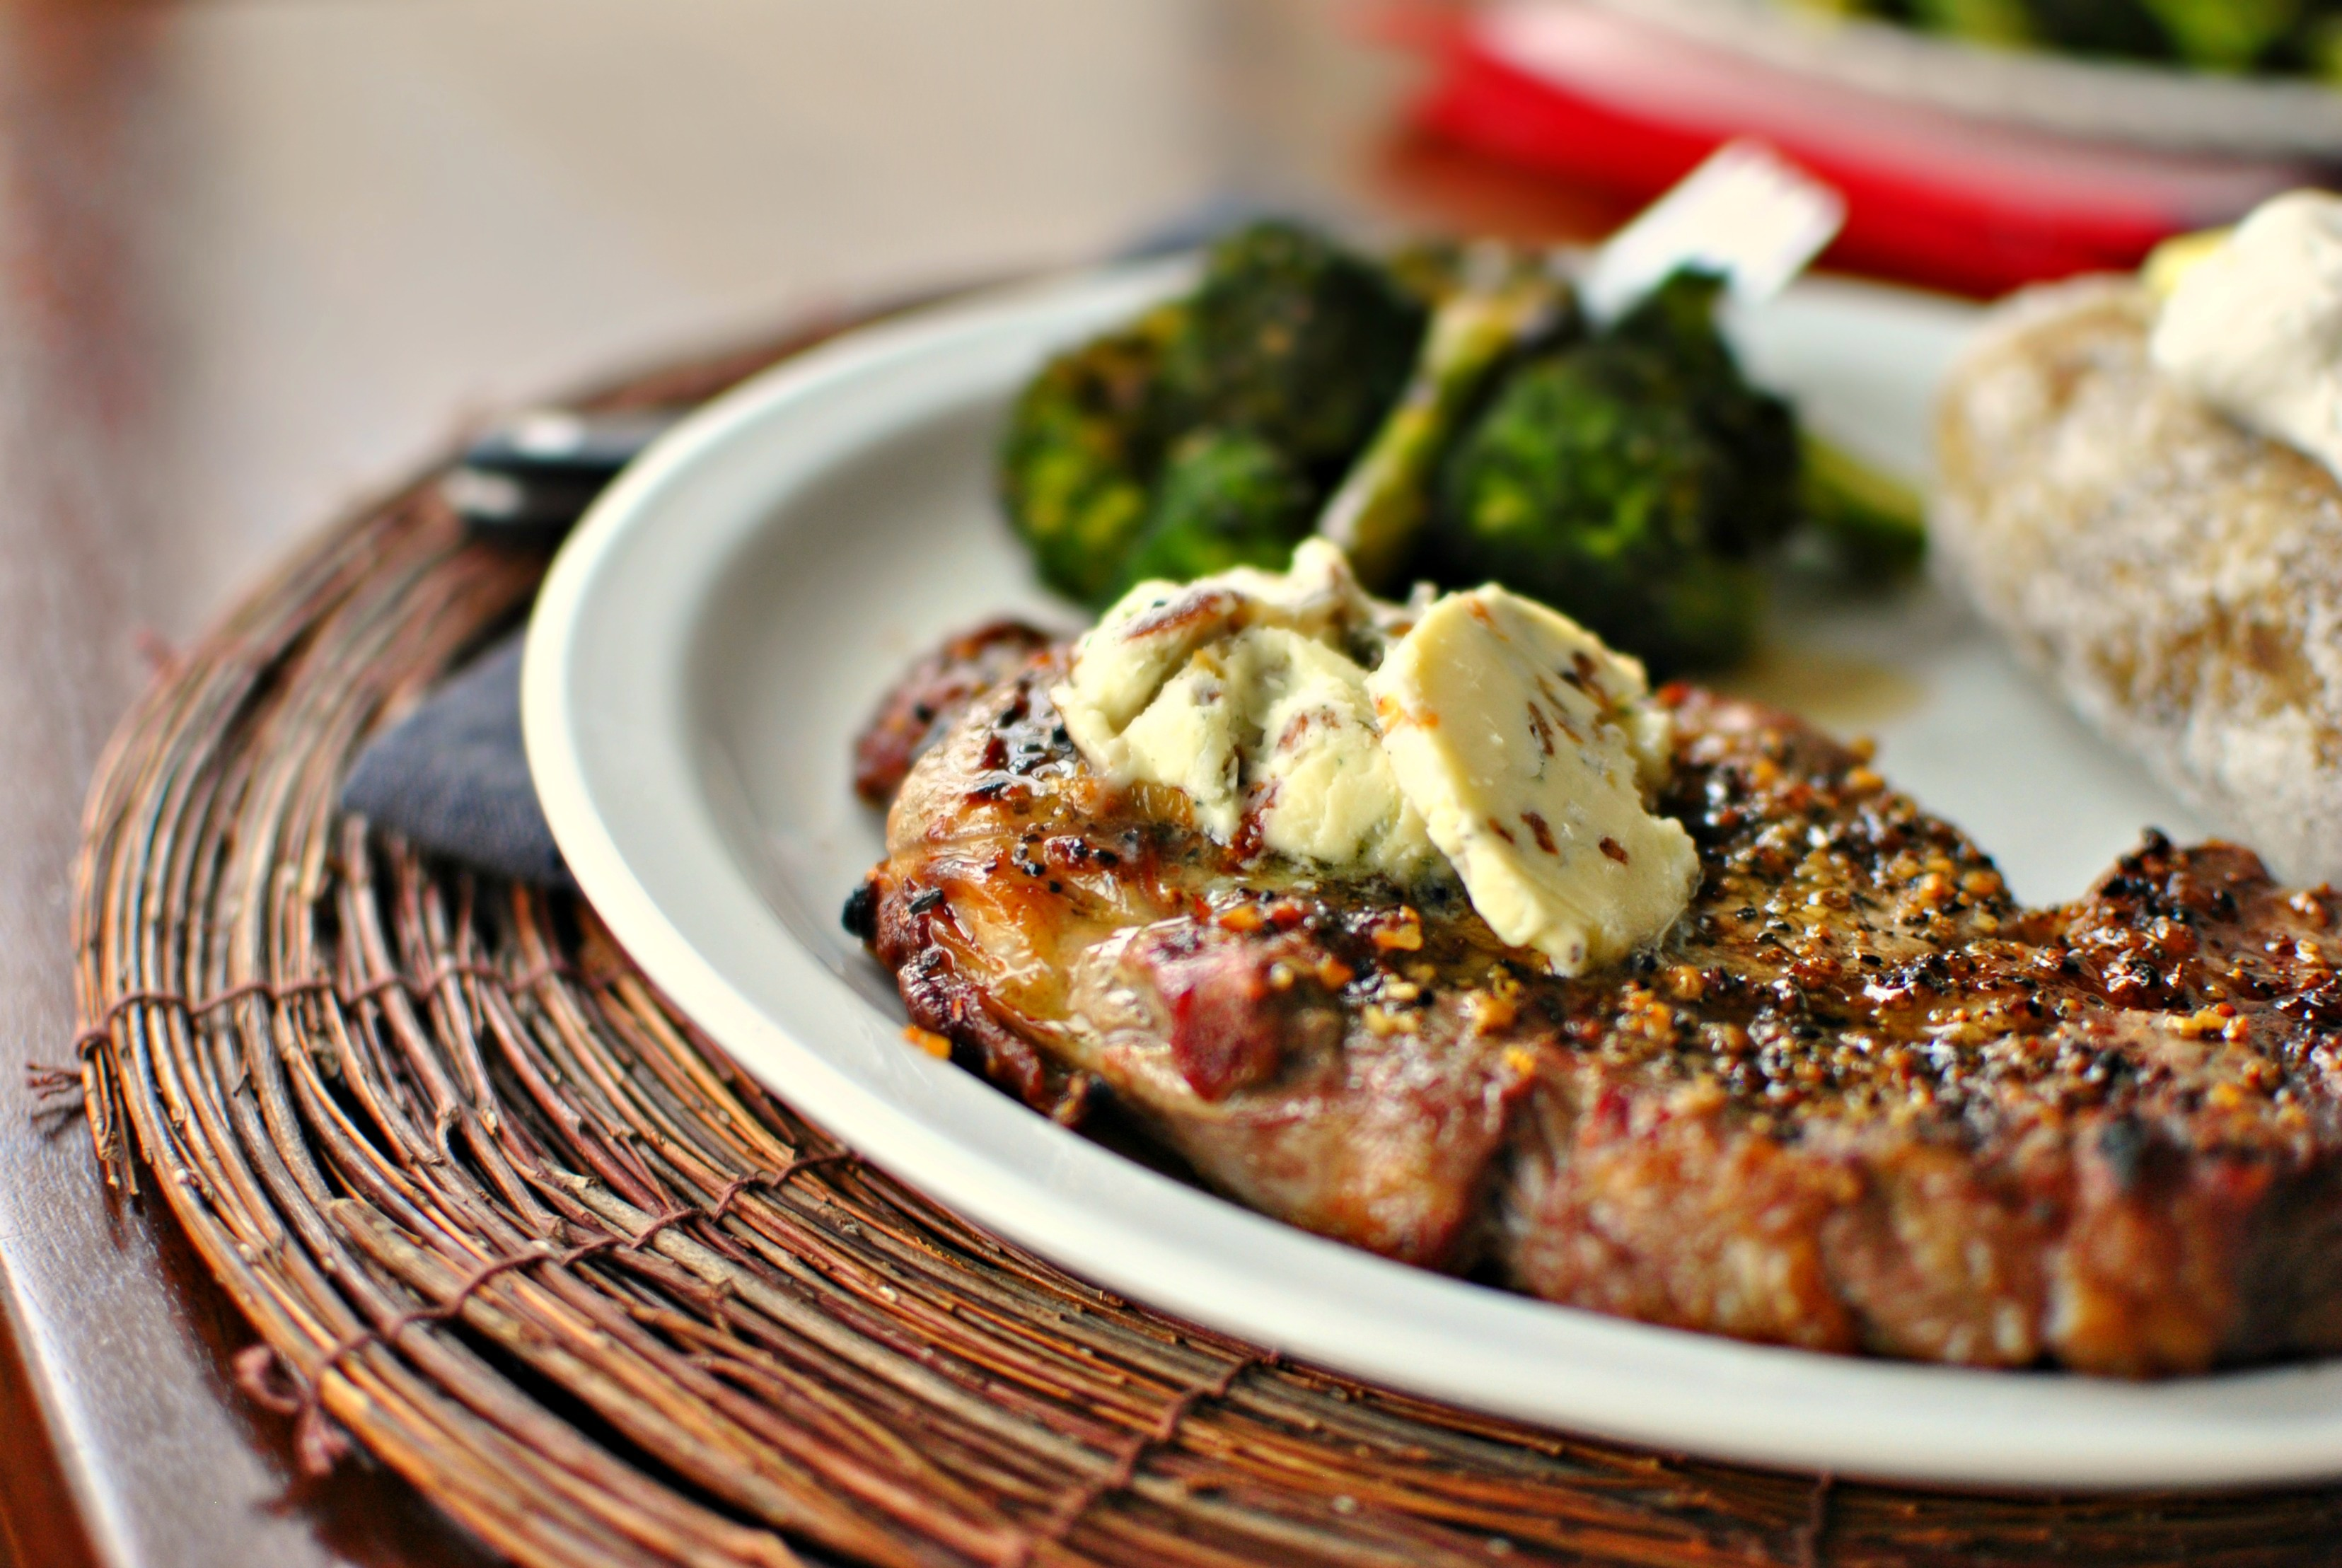 Simply Scratch » Ribeye with Caramelized Shallot & Blue Cheese Butter